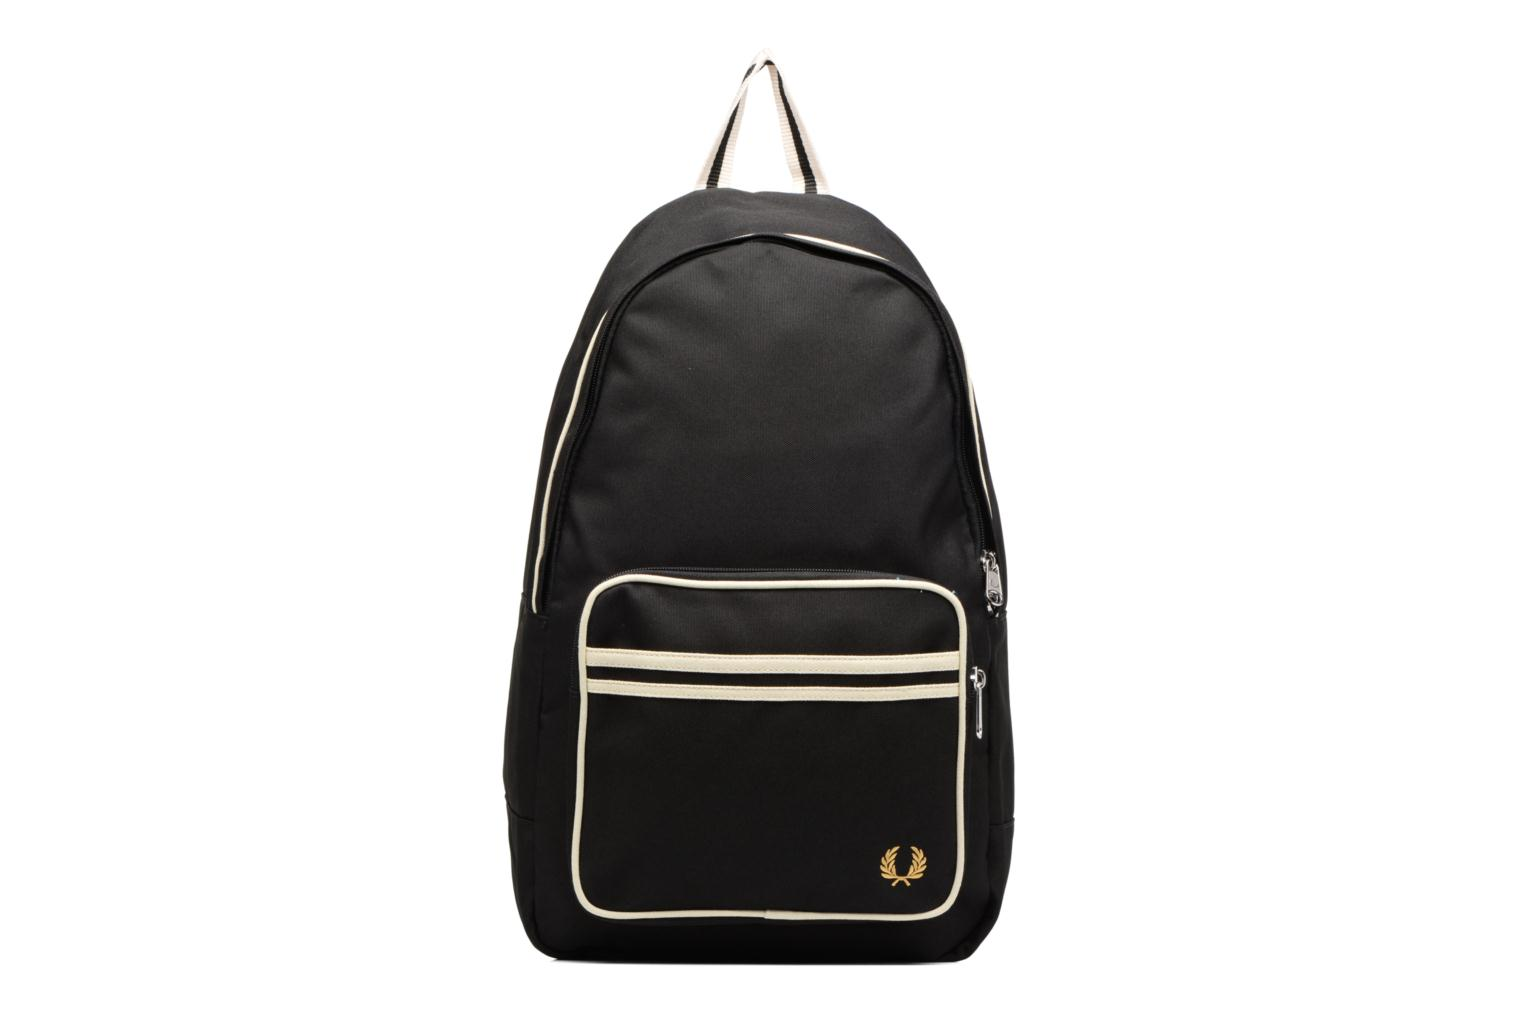 Fred Perry Sac à dos TWIN TIPPED BACK PACK Fred Perry solde